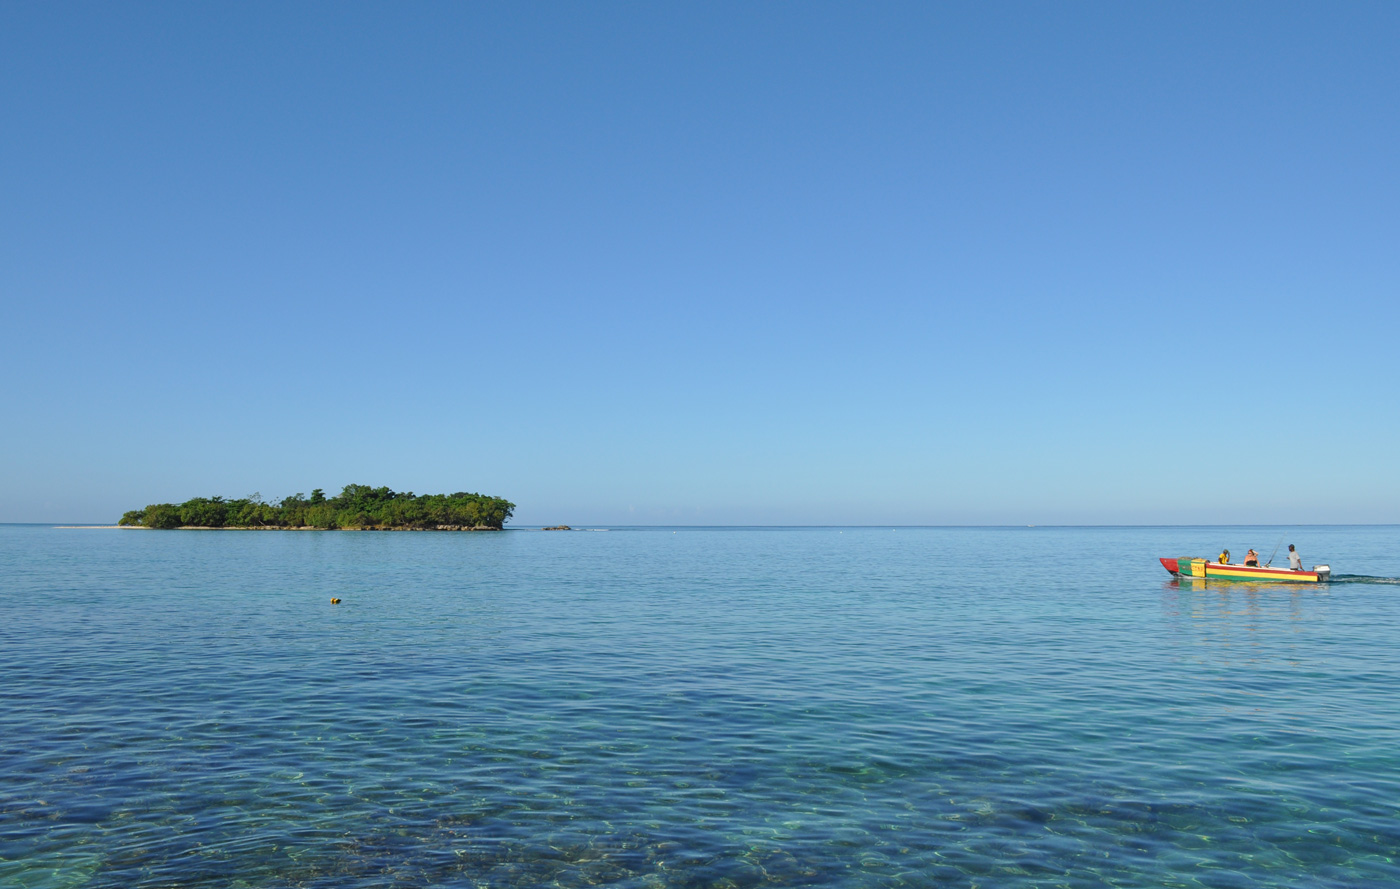 Dry Land Tourist Jamaica Negril Point Village Booby Cay